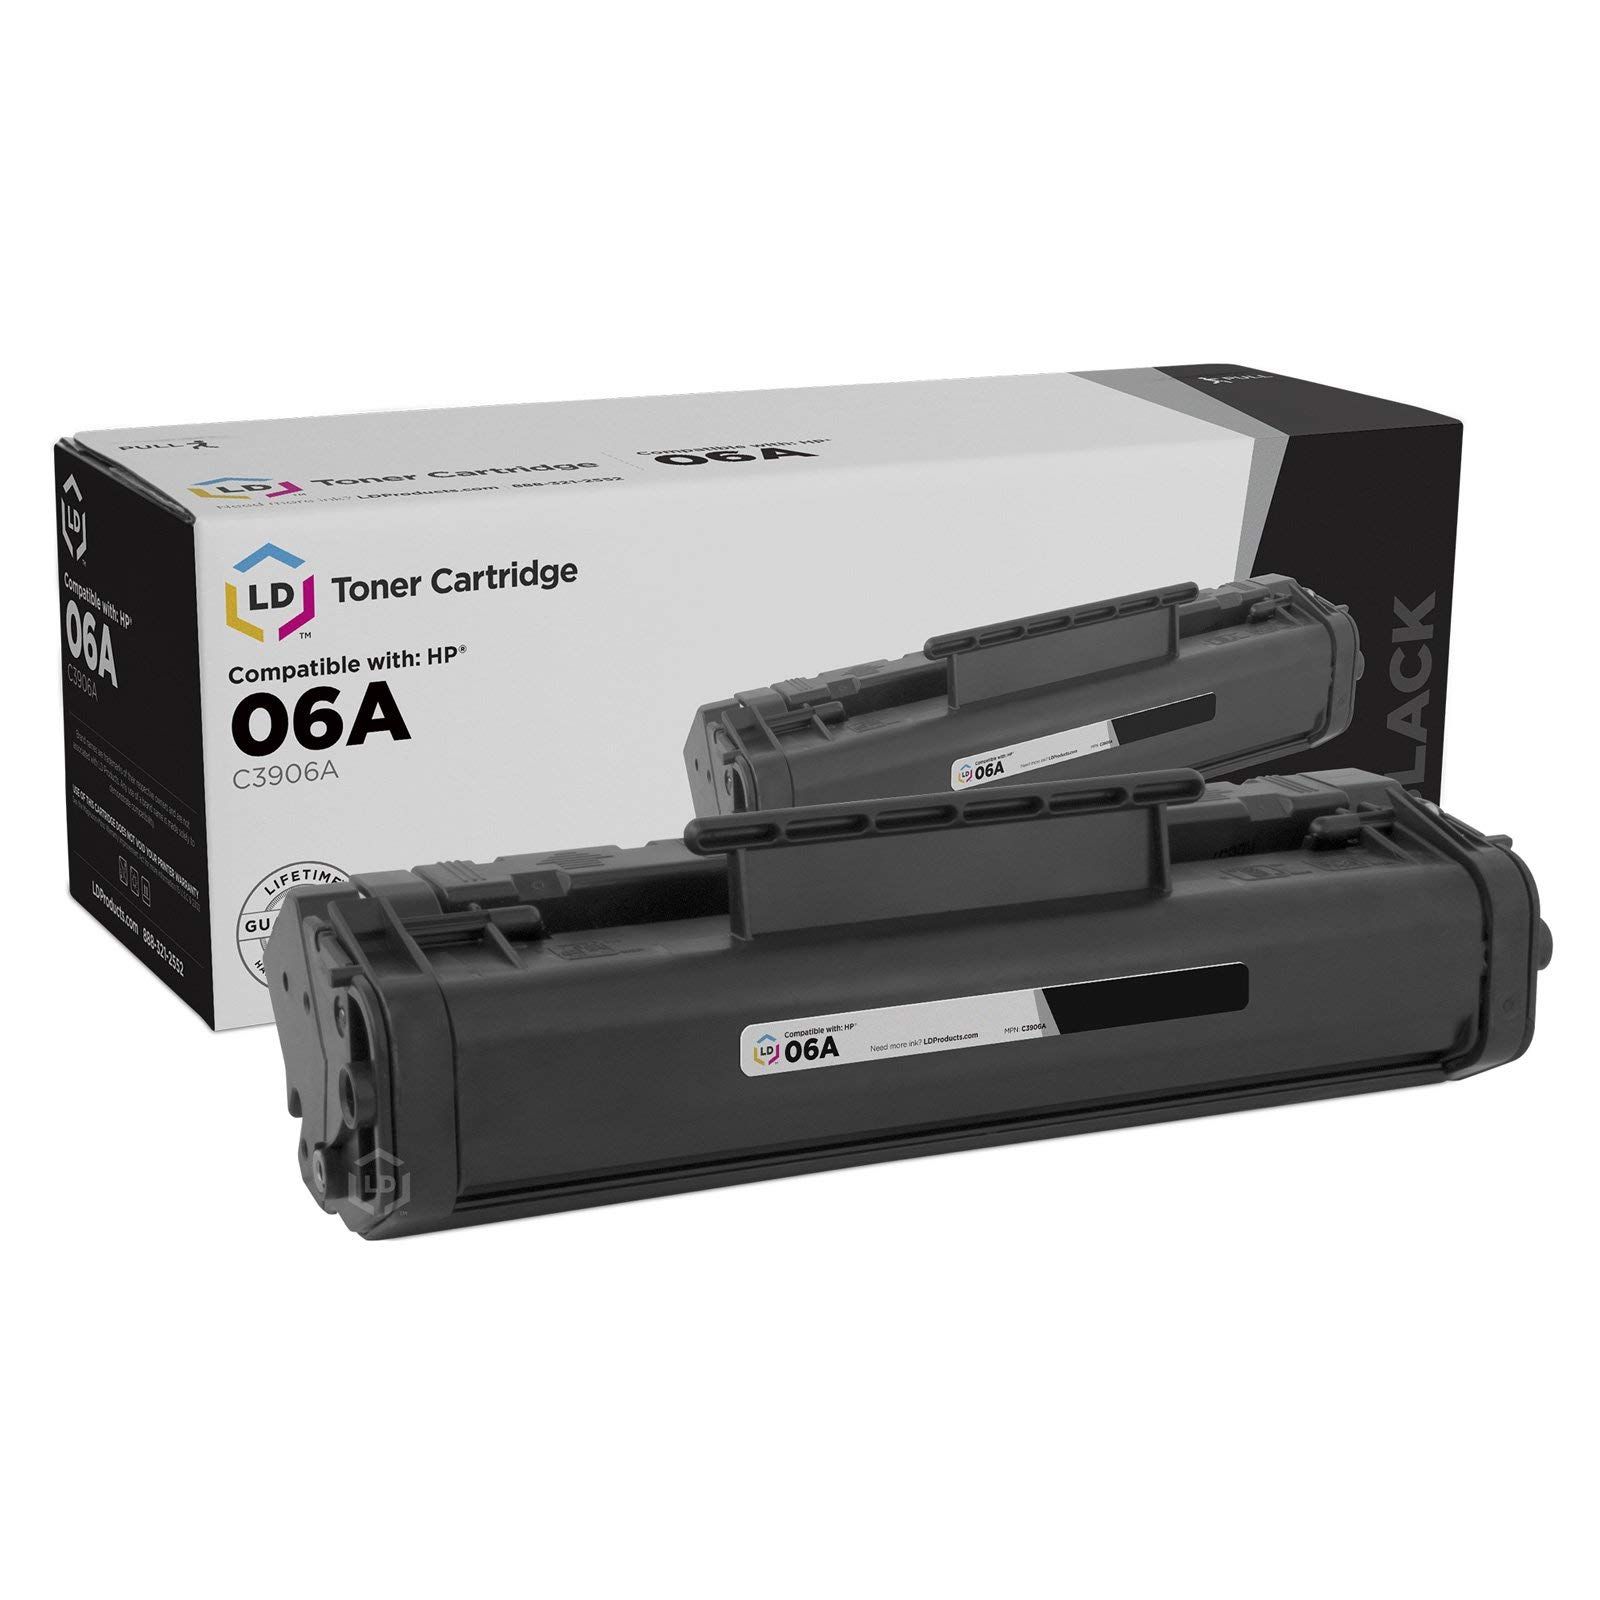 LD Remanufactured Toner Cartridge Replacement for HP 06A C3906A (Black)